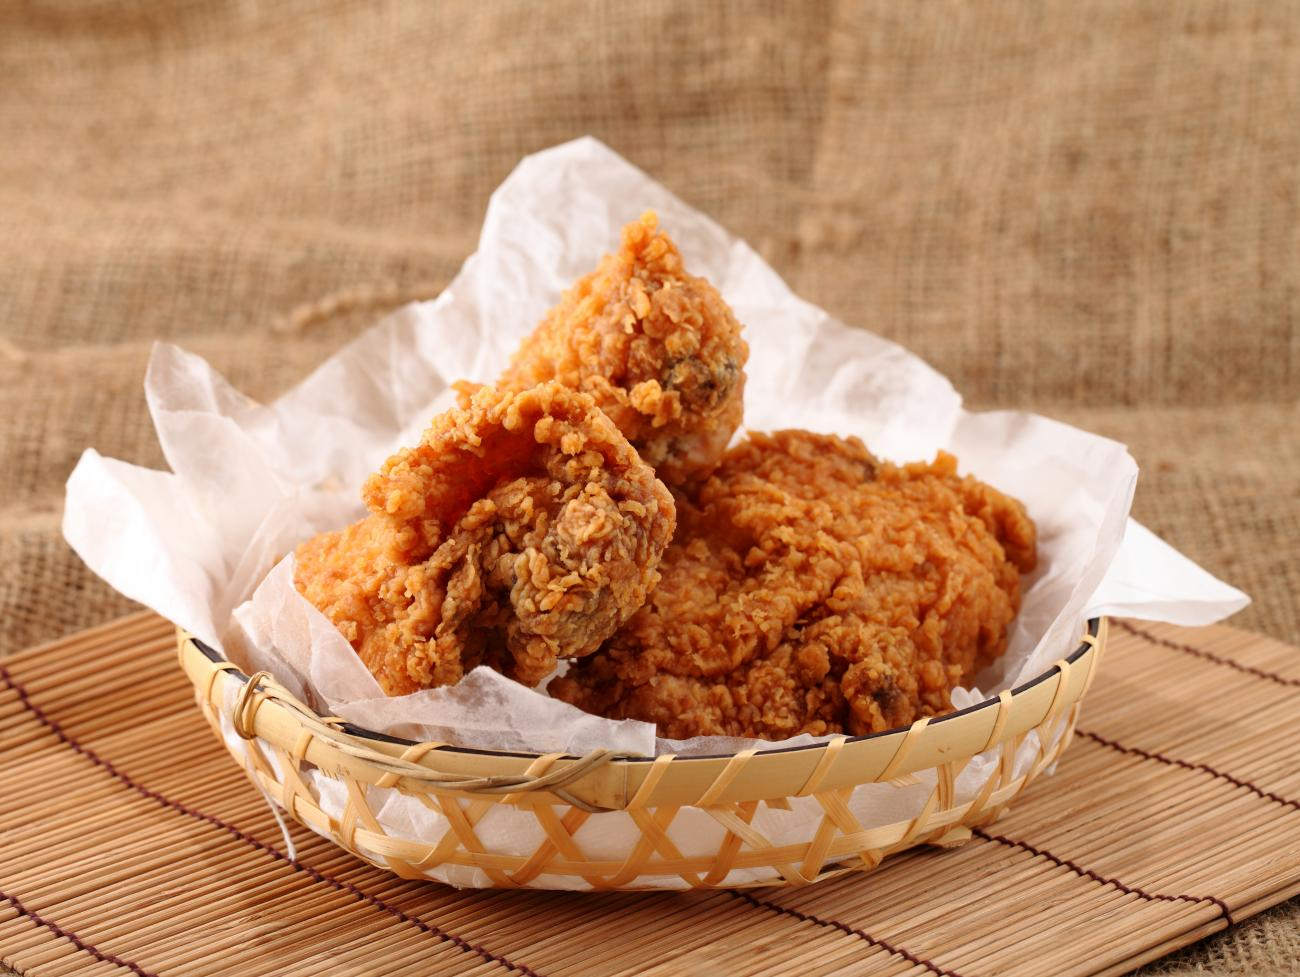 Recipe for Fried Chicken Recipe | First Prize 1998